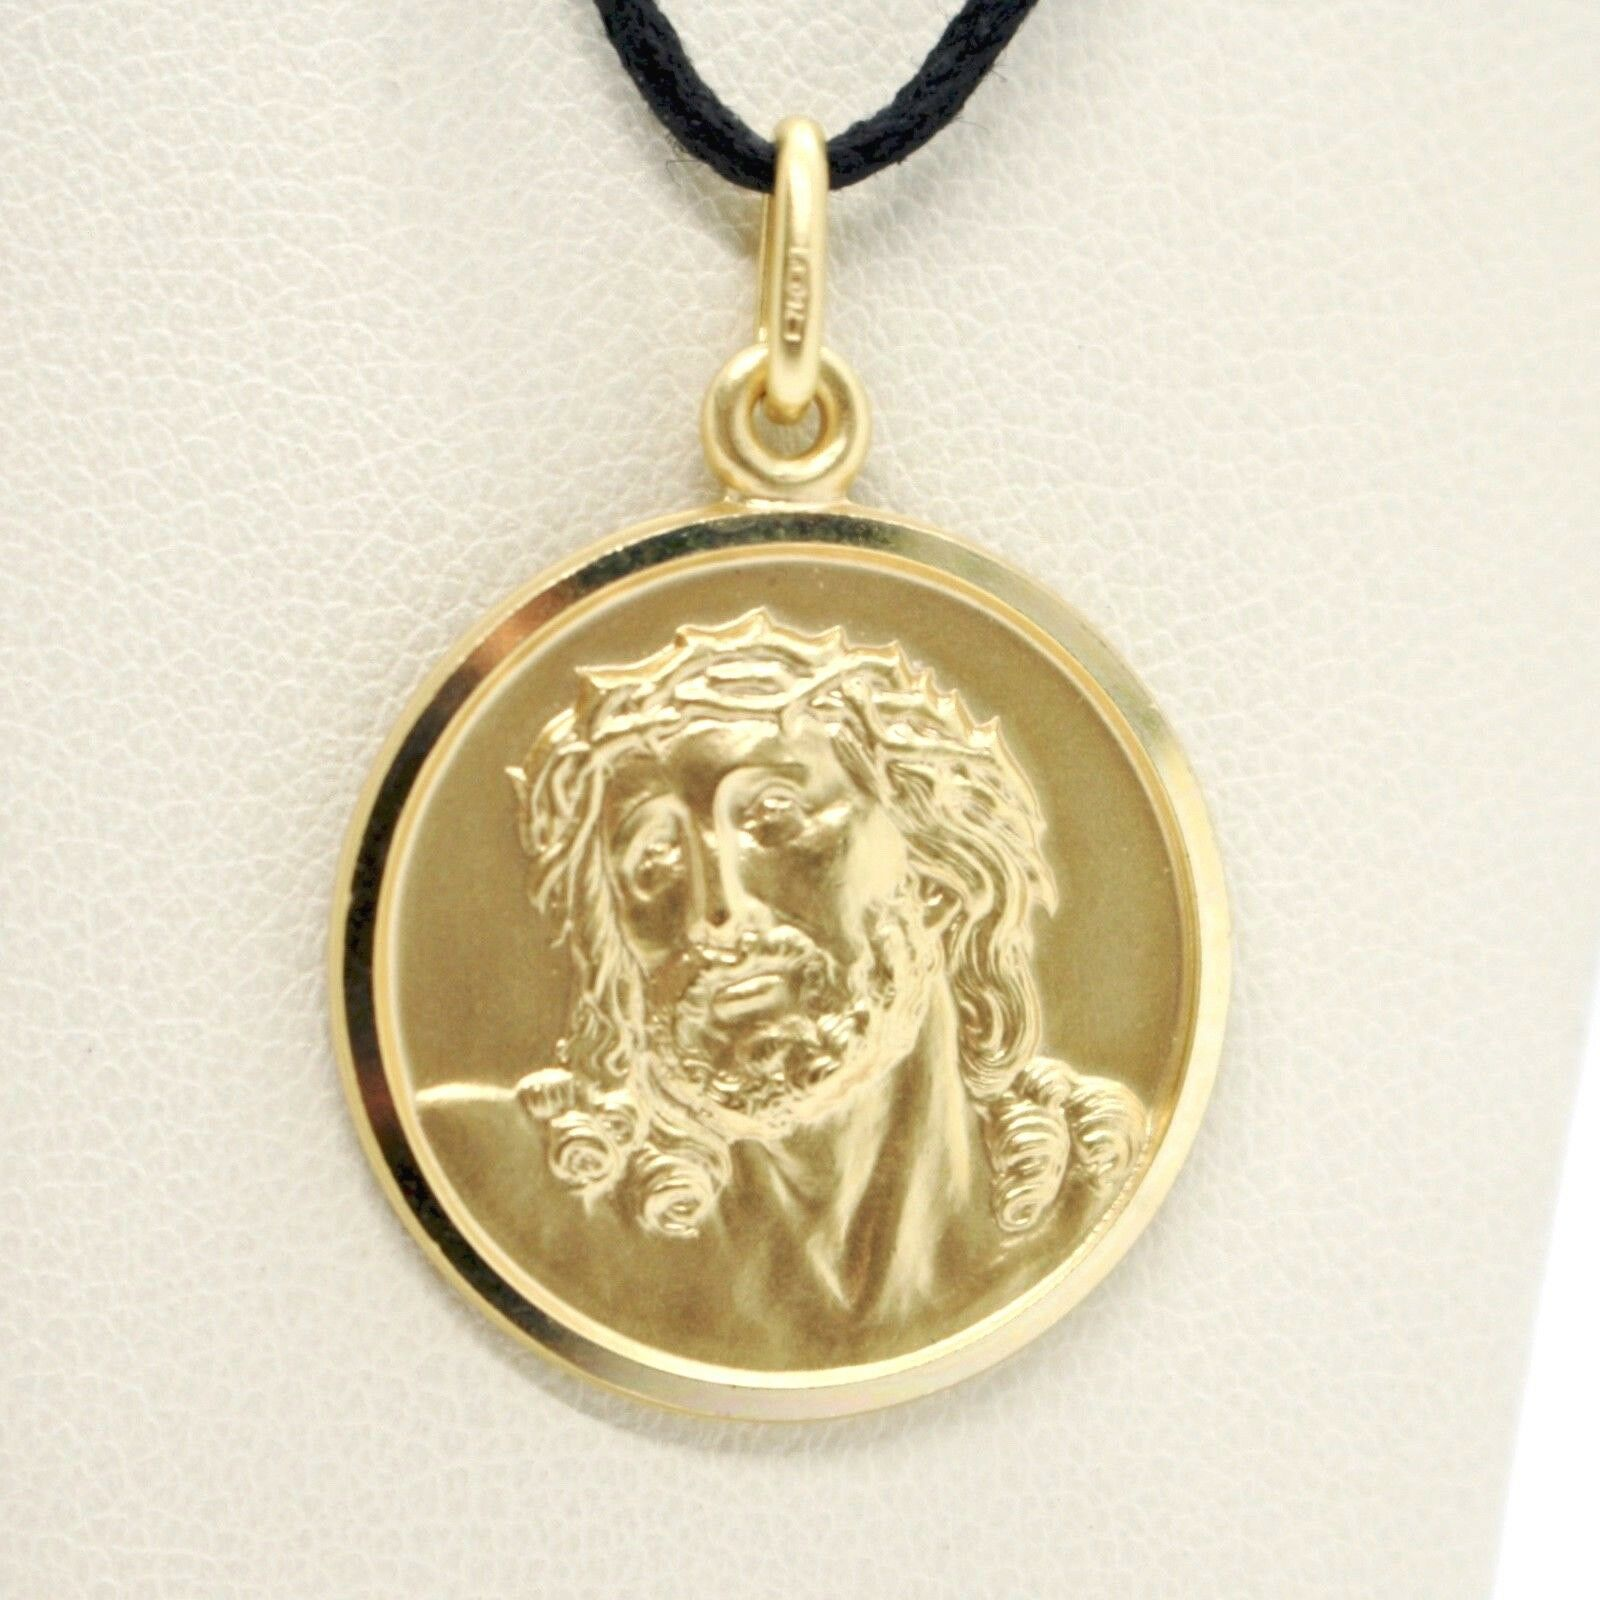 18K YELLOW GOLD ECCE HOMO, JESUS CHRIST FACE MEDAL DETAILED MADE IN ITALY, 17 MM